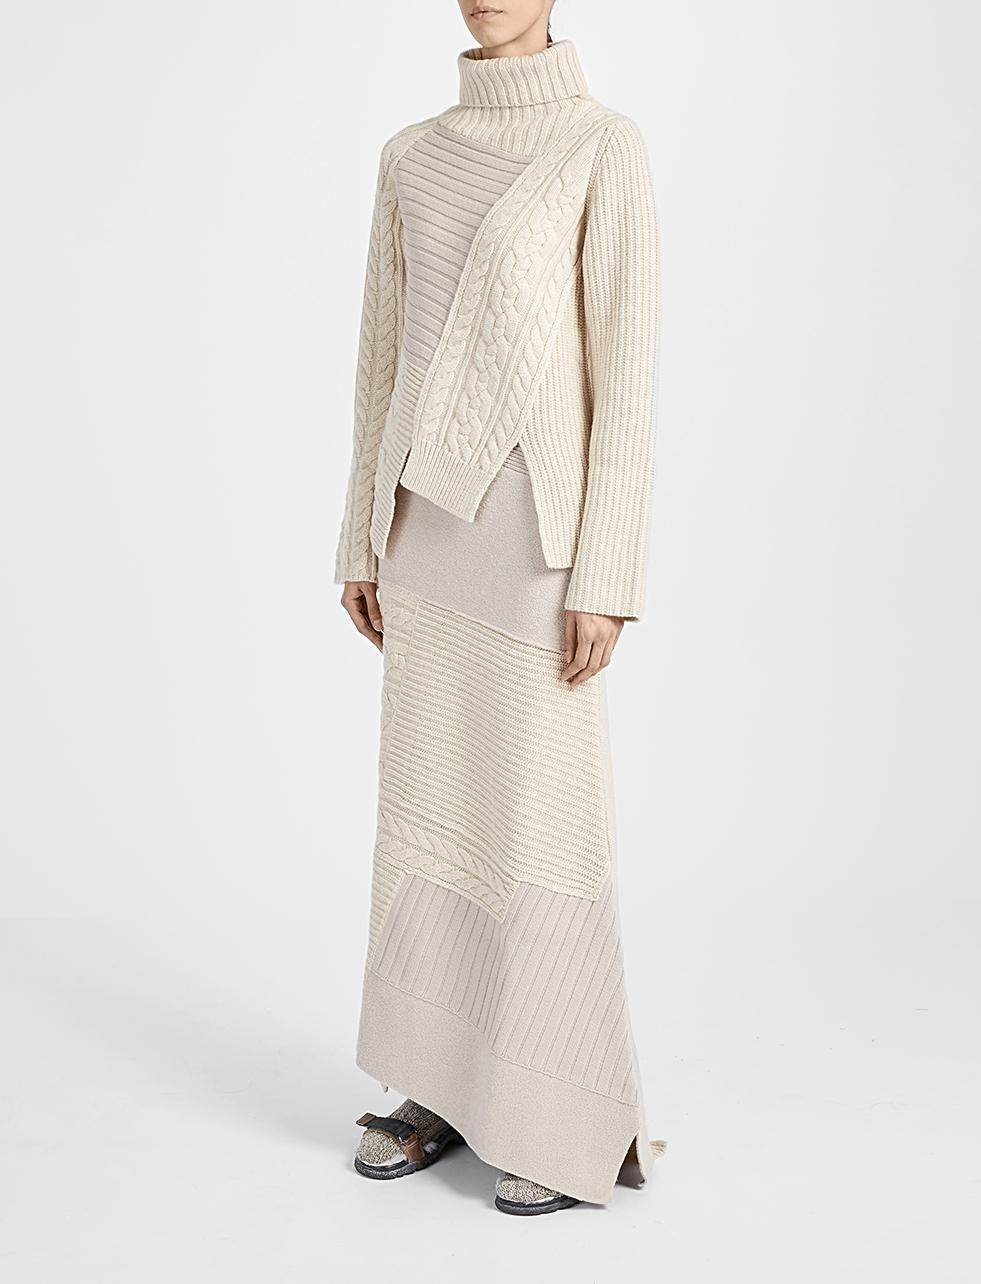 Joseph Patchwork Knit Long Sweater Skirt in Natural | Lyst